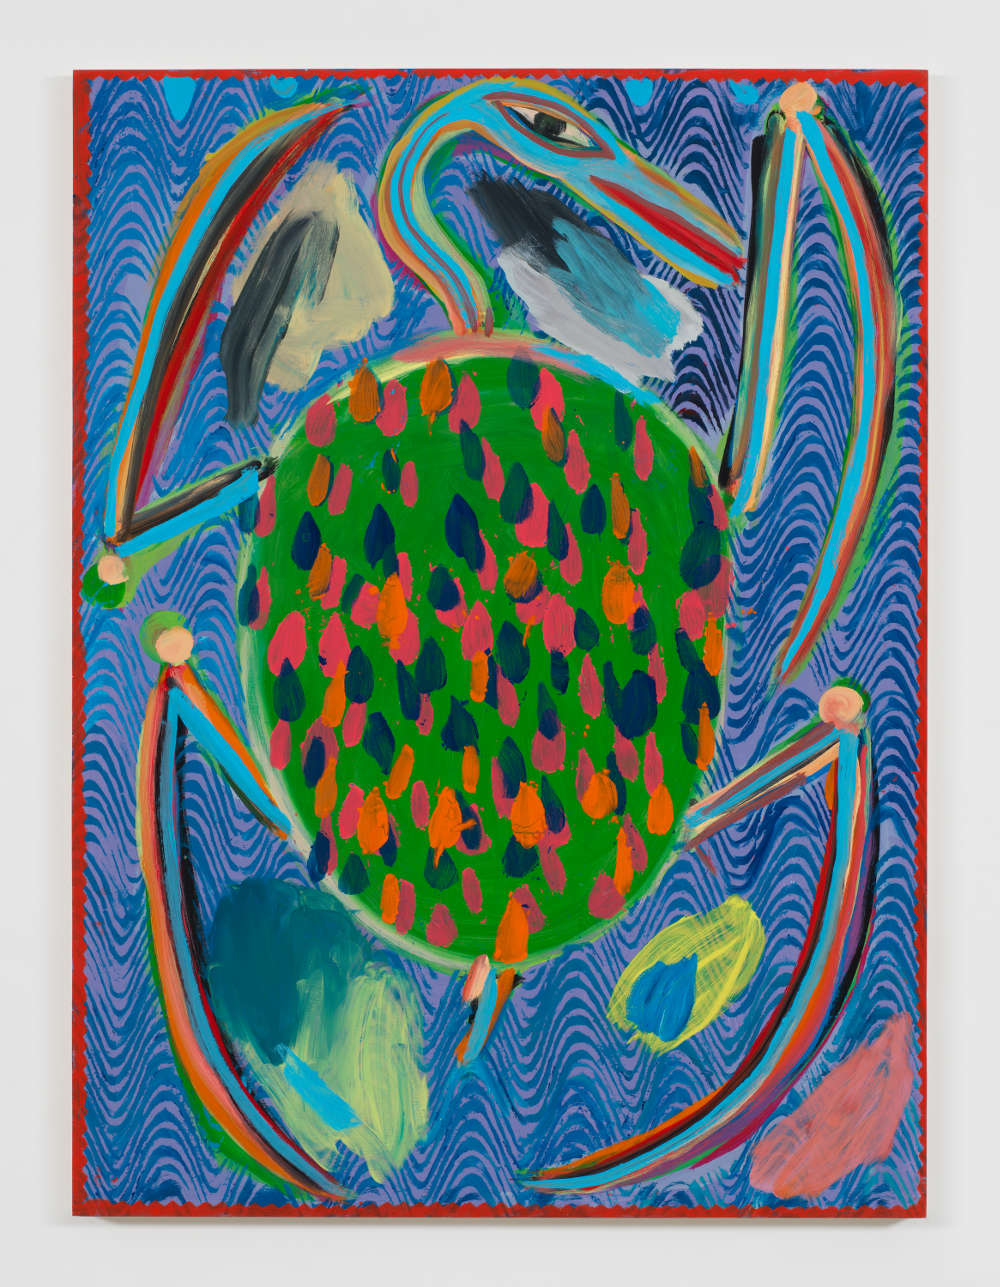 Josh Smith, Turtle, 2019. Oil on wood panel 48 x 35 3/4 inches 121.9 x 90.8 cm © Josh Smith. Courtesy the artist and David Zwirner